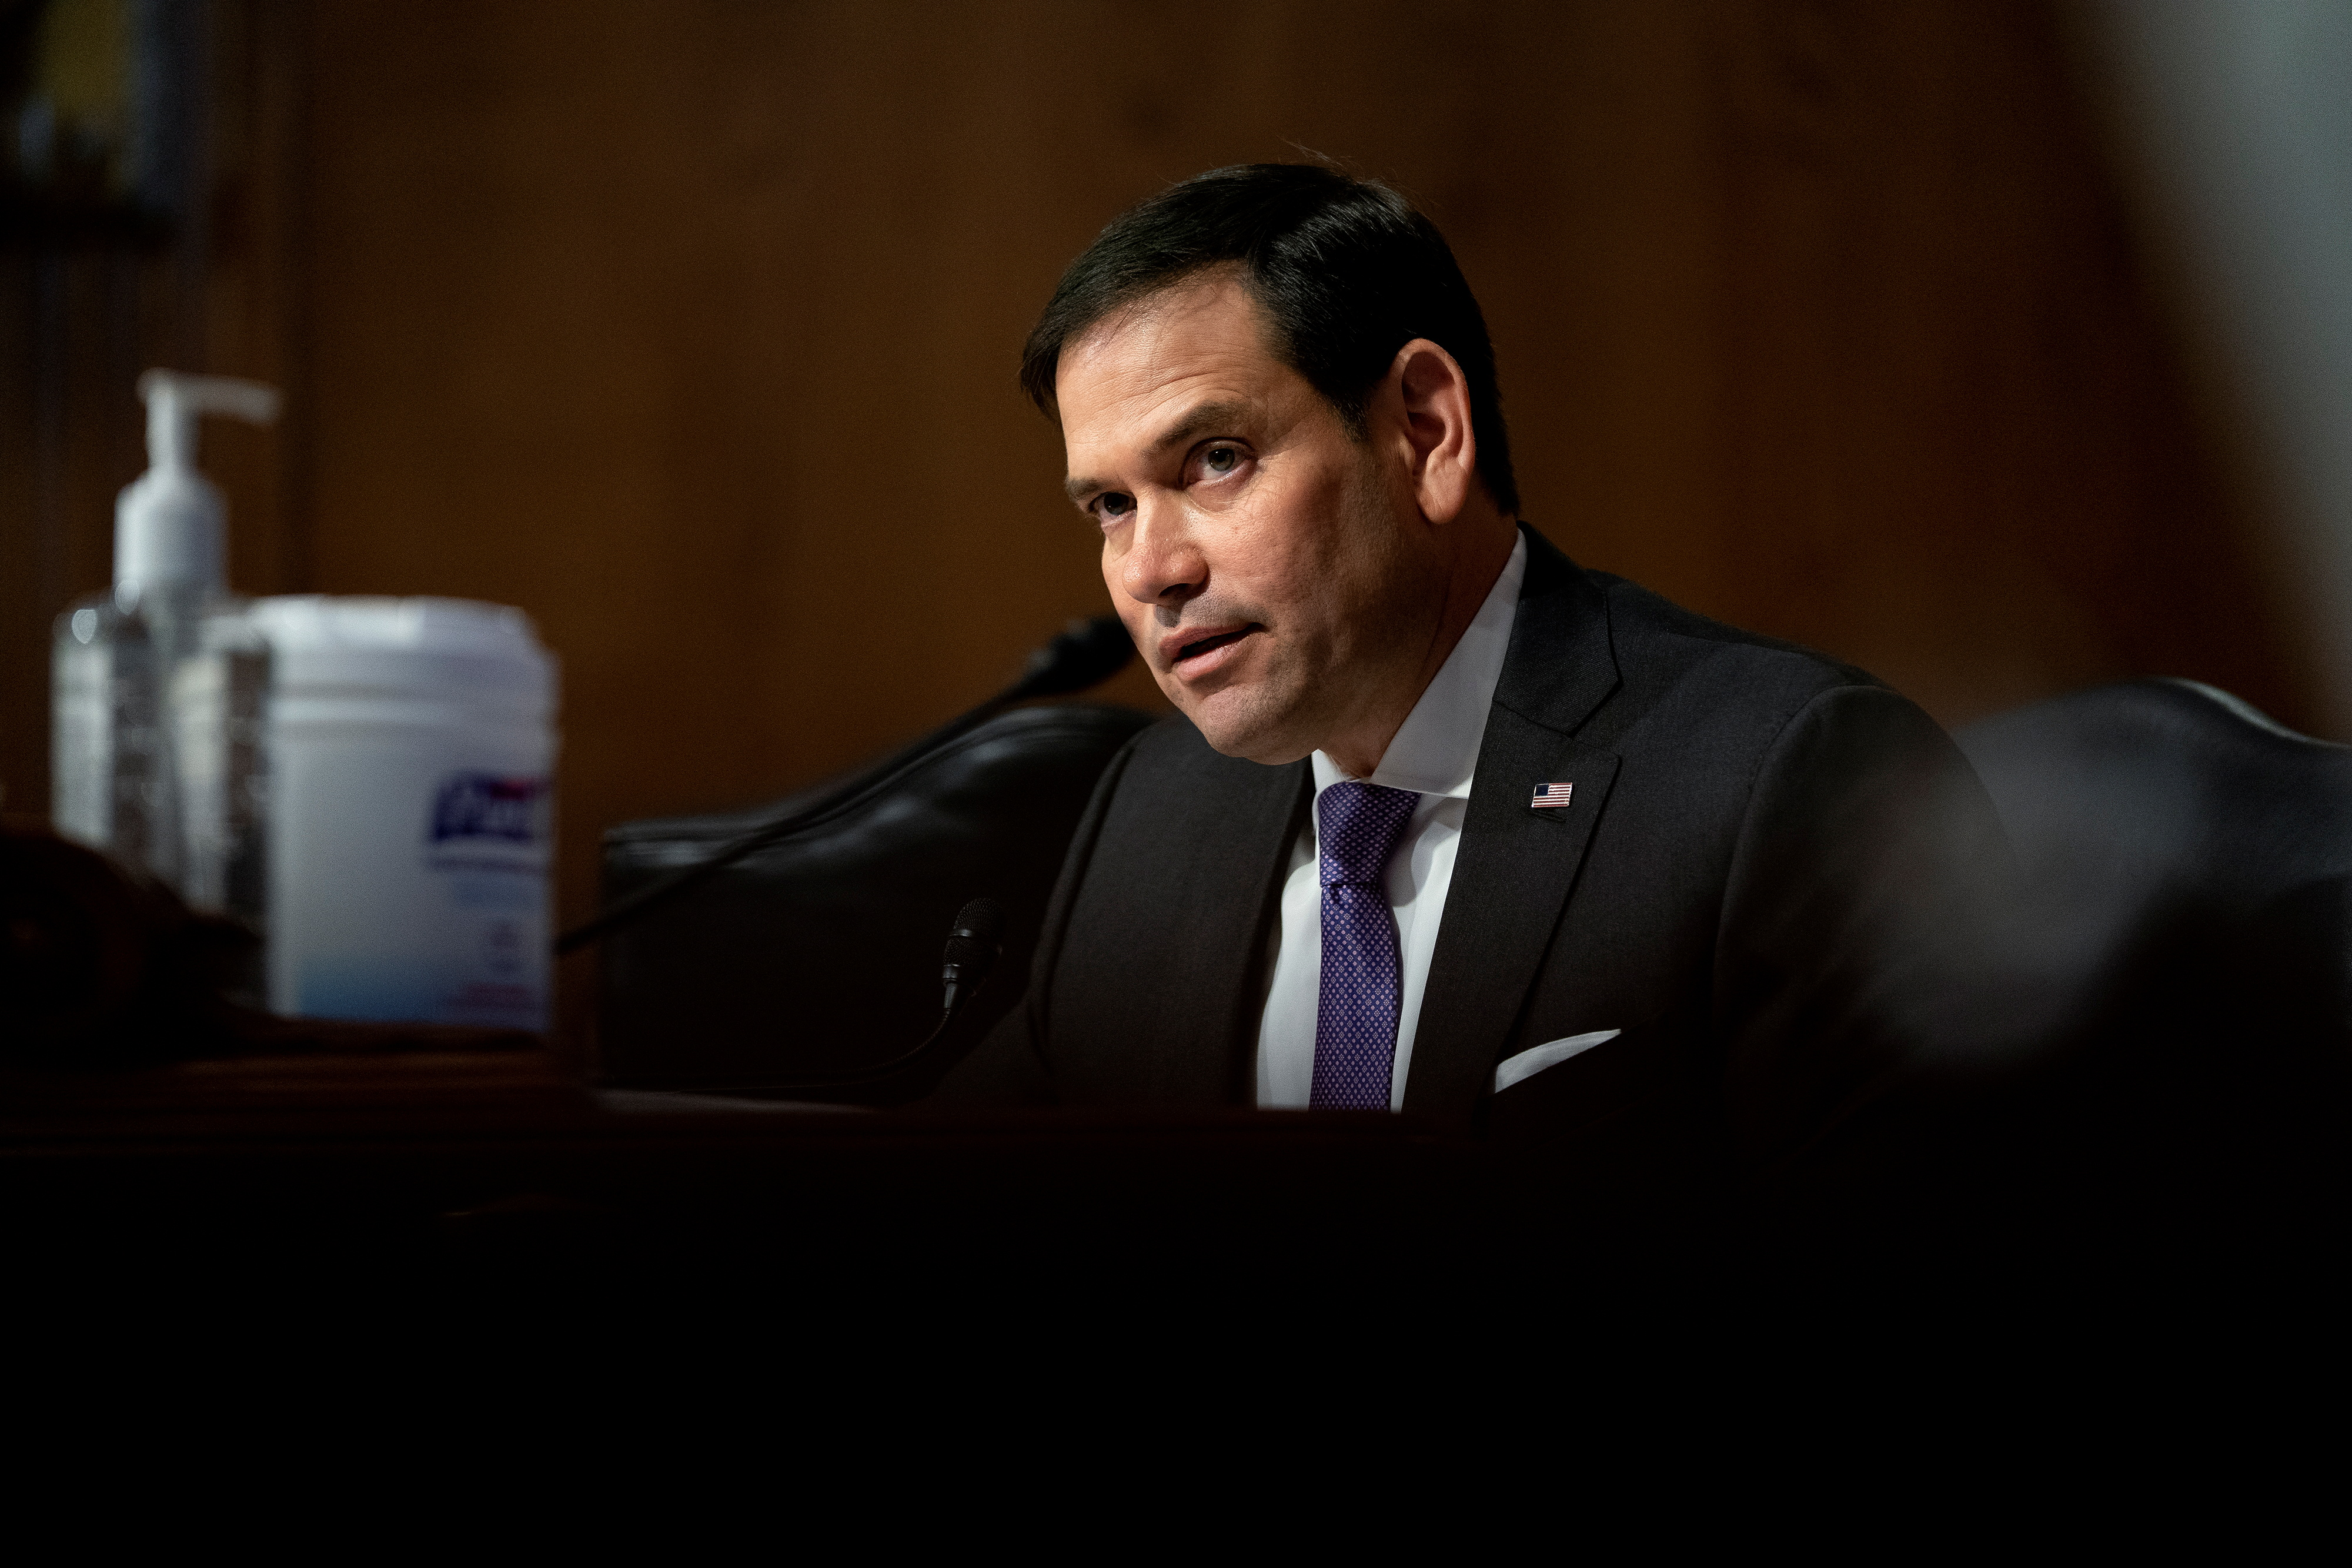 Senator Marco Rubio, a Republican from Florida, speaks during a Senate Appropriations Subcommittee hearing in Washington, D.C., U.S., May 26, 2021. Stefani Reynolds/Pool via REUTERS/Files